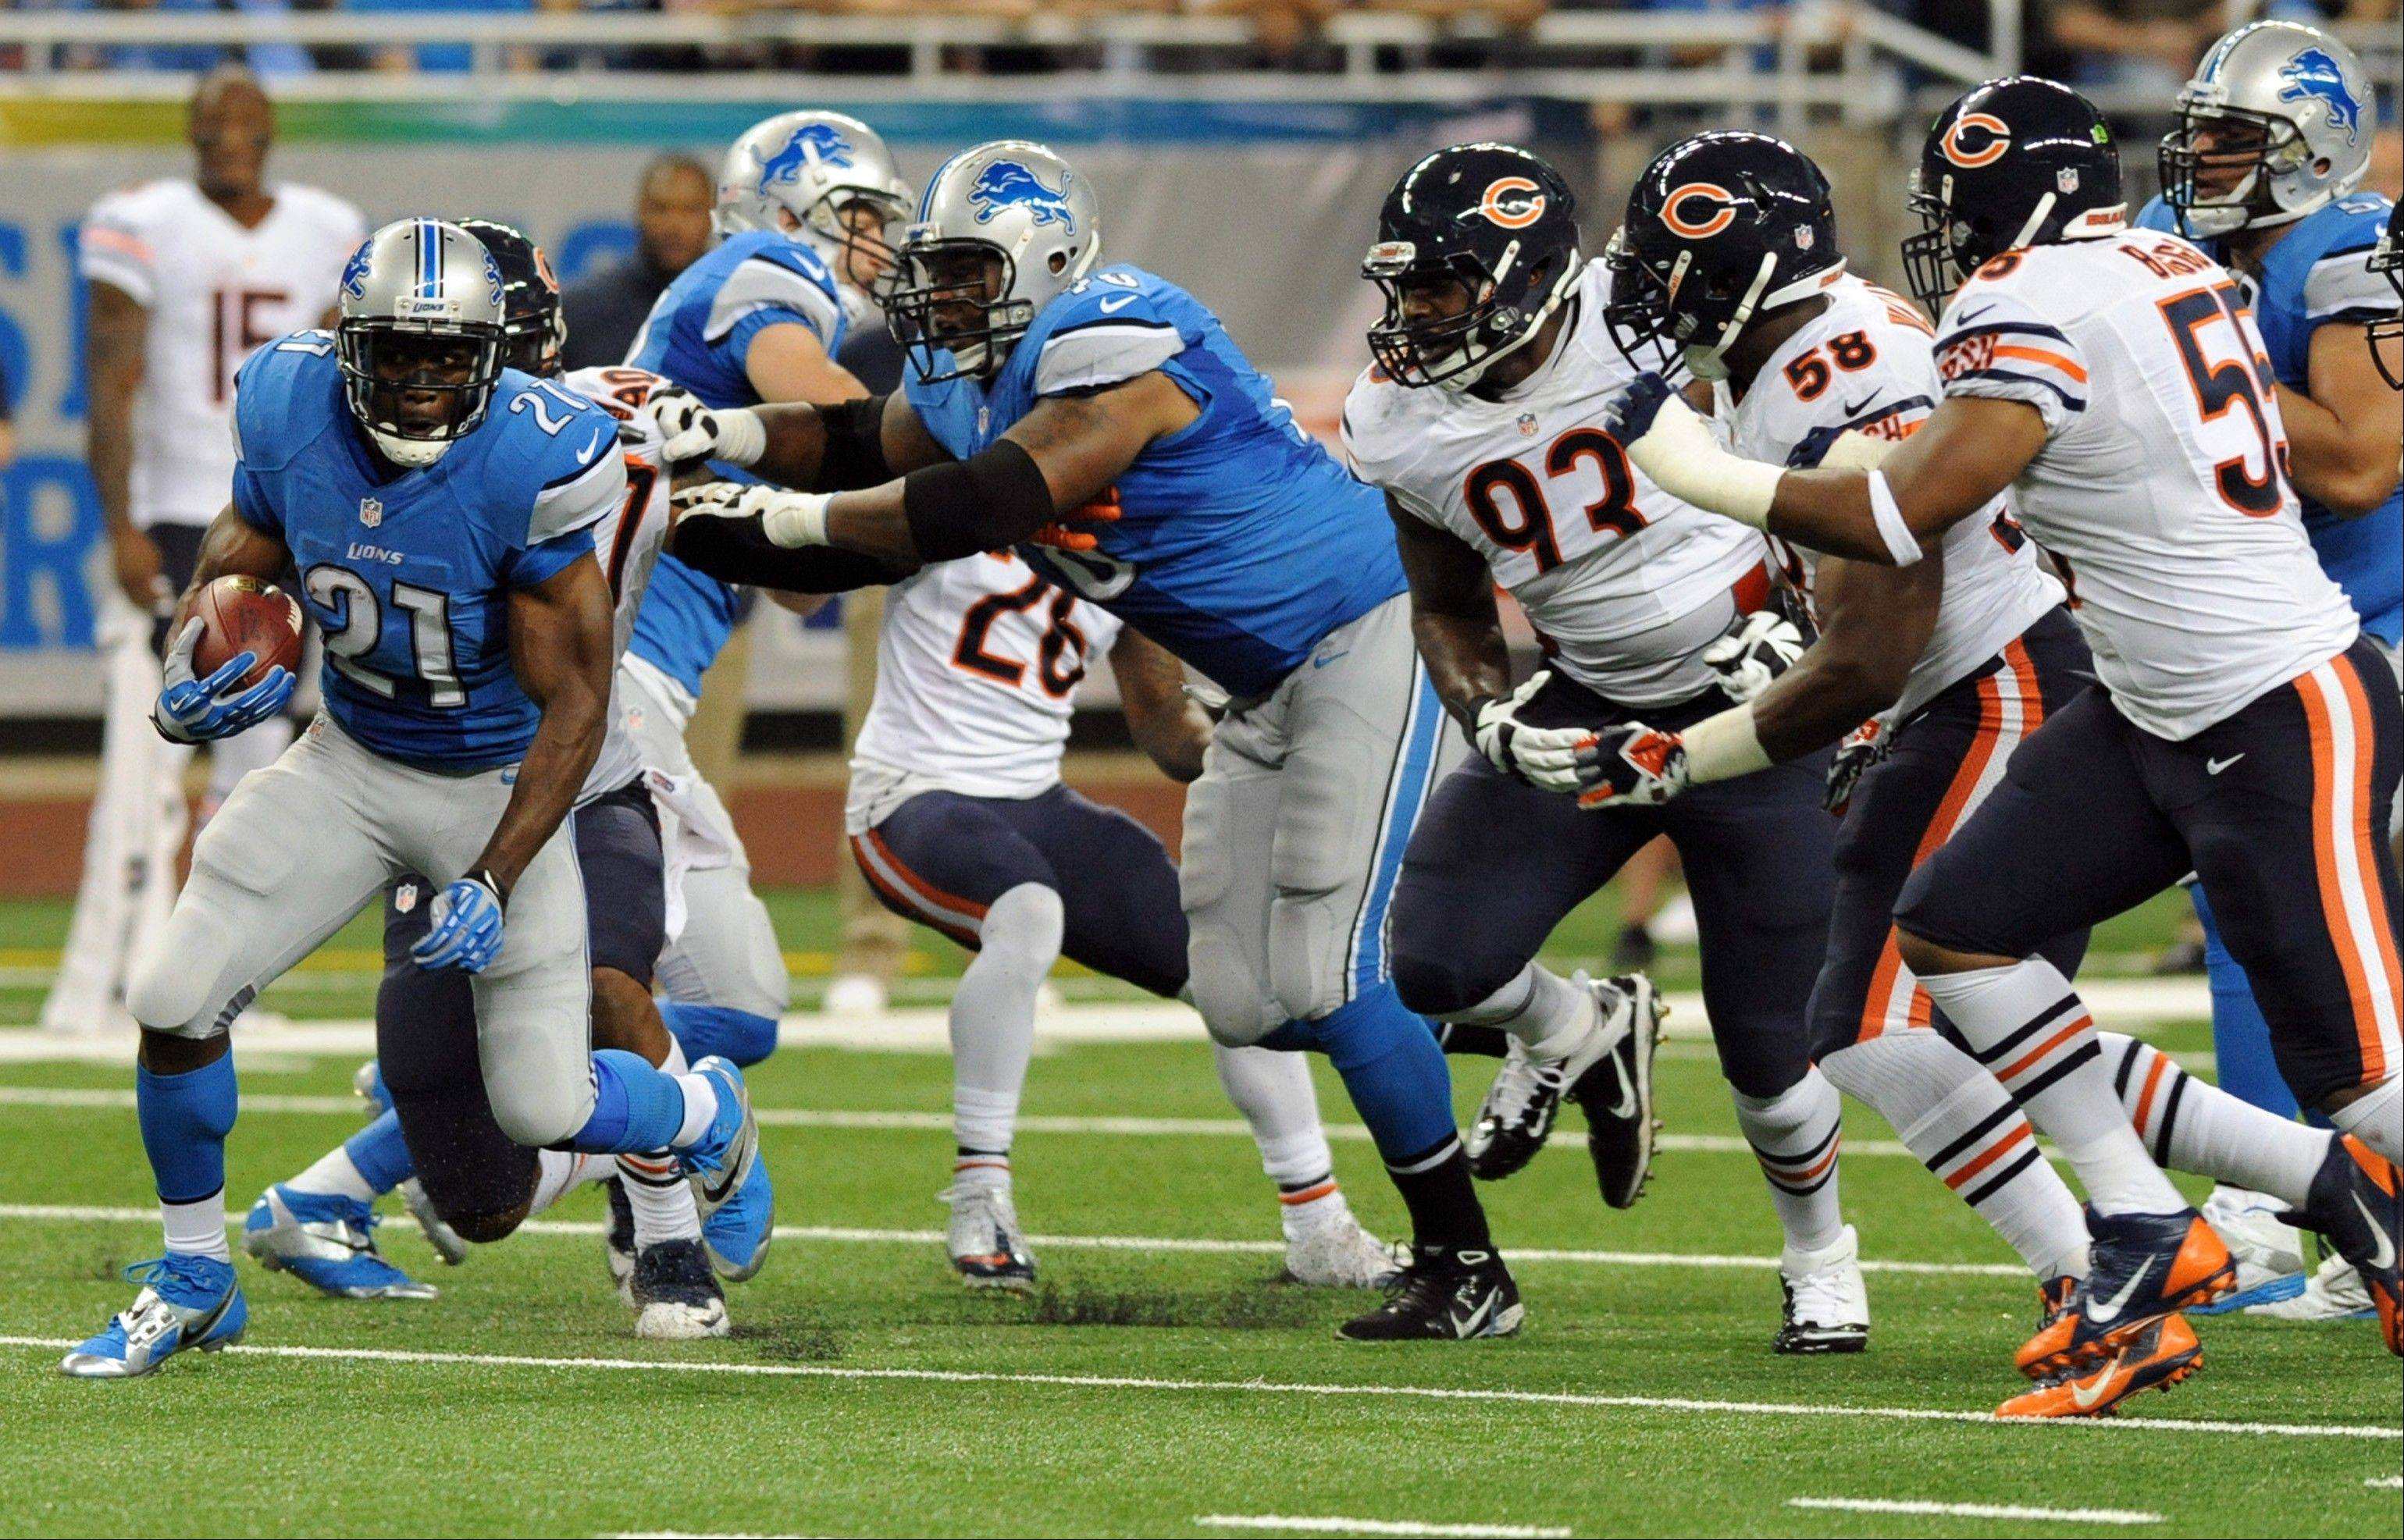 Detroit Lions running back Reggie Bush (21) rushes against the defense of the Chicago Bears during the first quarter.